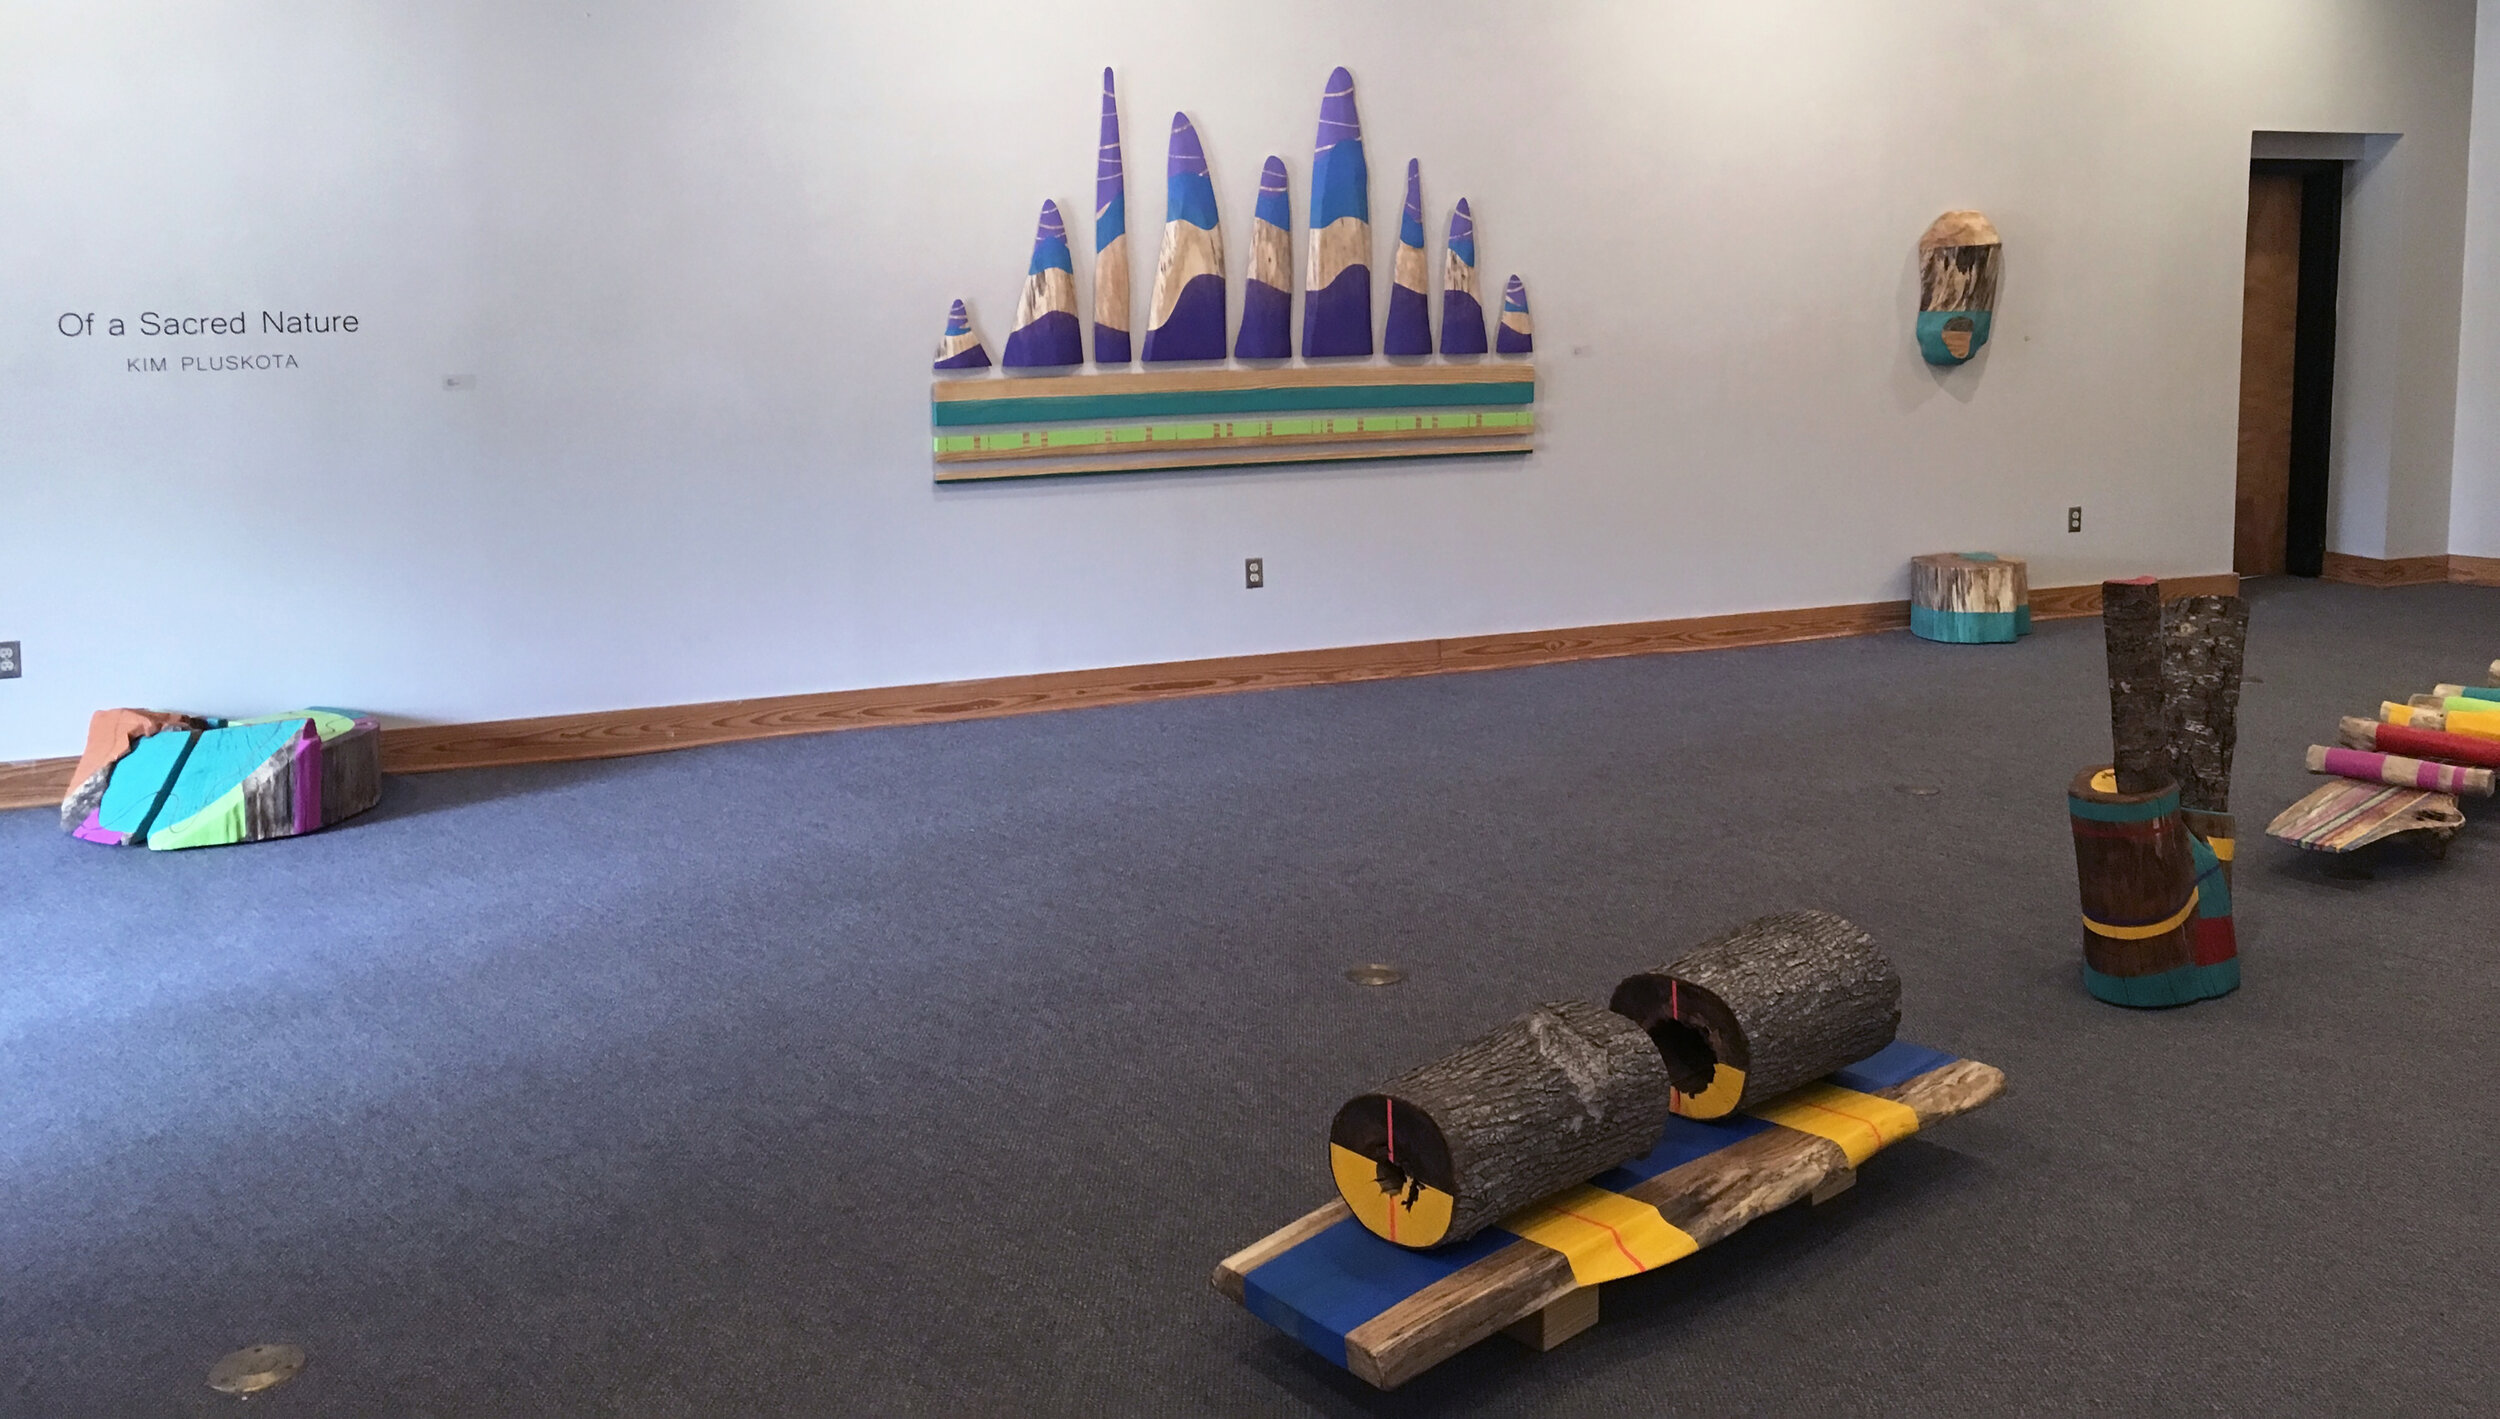 View 1 of Eula Bass Lewis Gallery space